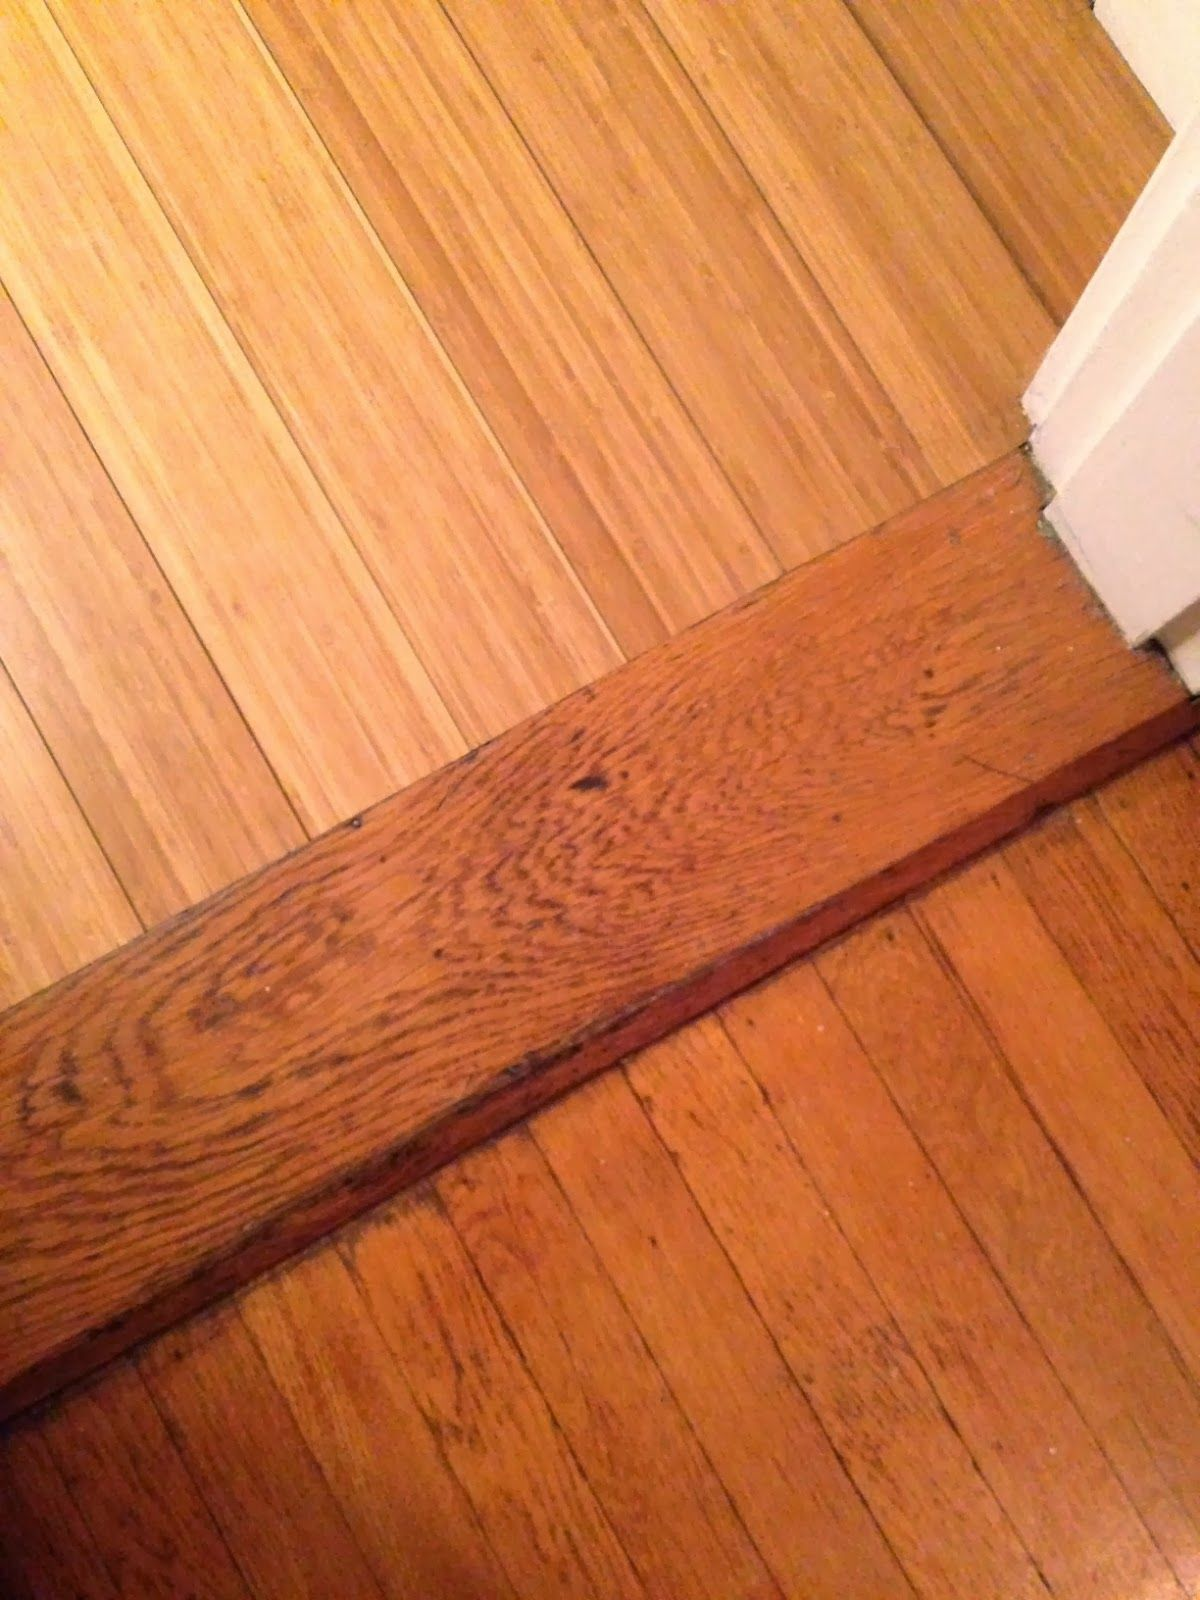 Have You Ever Seen A Pretty Transition Between Two Distinctly Different Hardwood Floors I Living Room Hardwood Floors Wood Floors Wide Plank Old Wood Floors